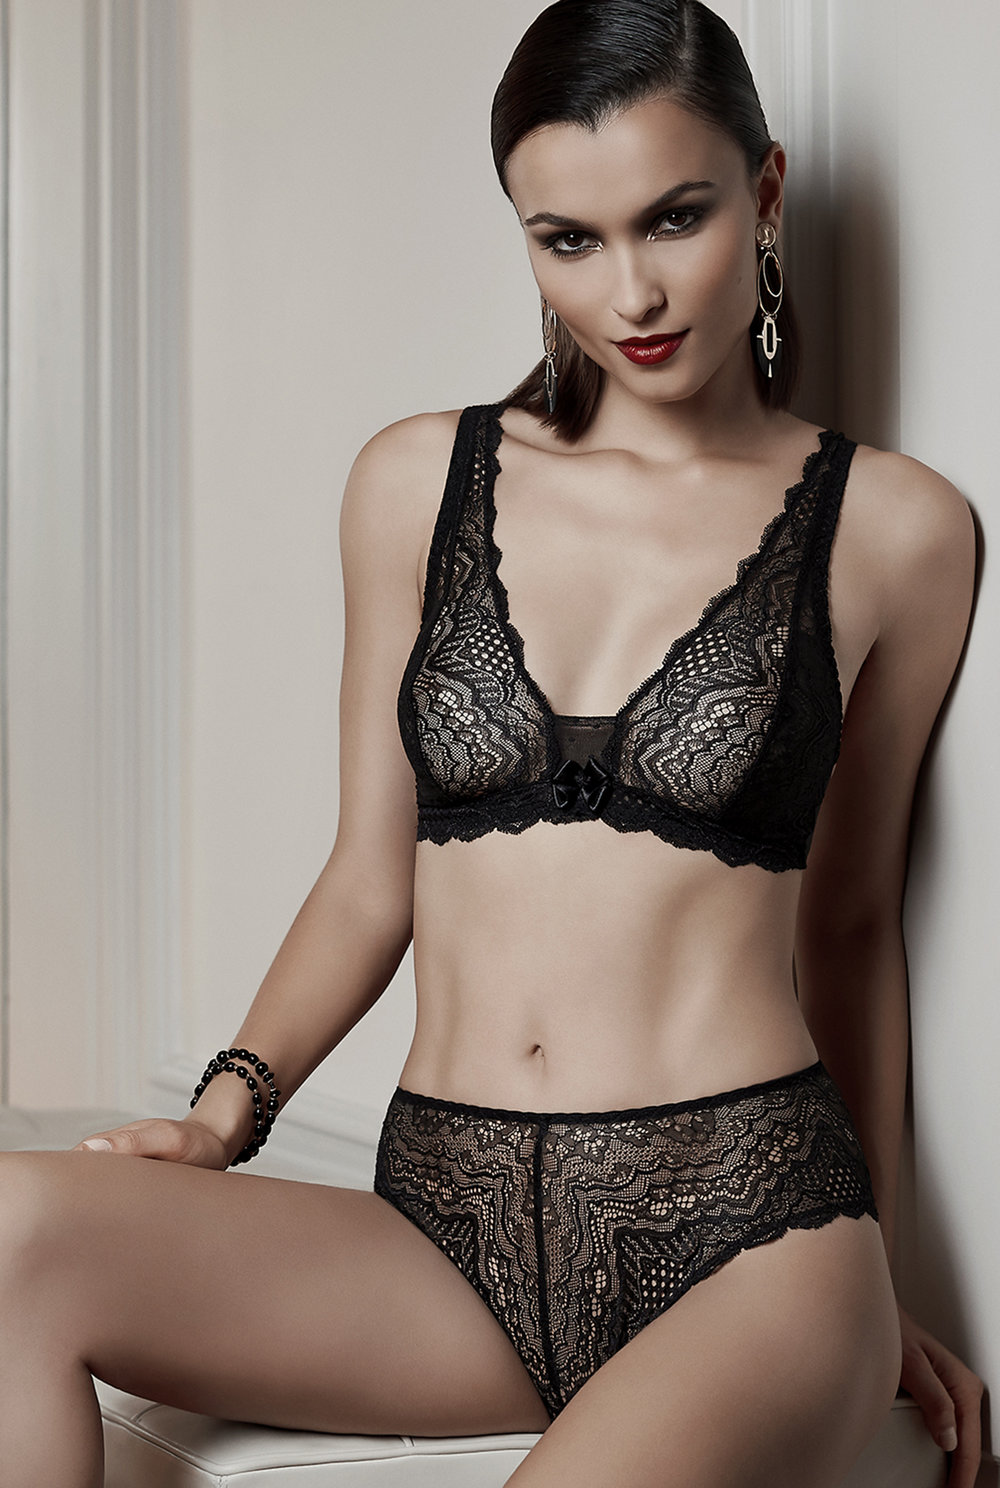 Désir d'un Soir   triangle, sizes 85 to 95 b, c : $63   Shorty, sizes 36 to 46: $38